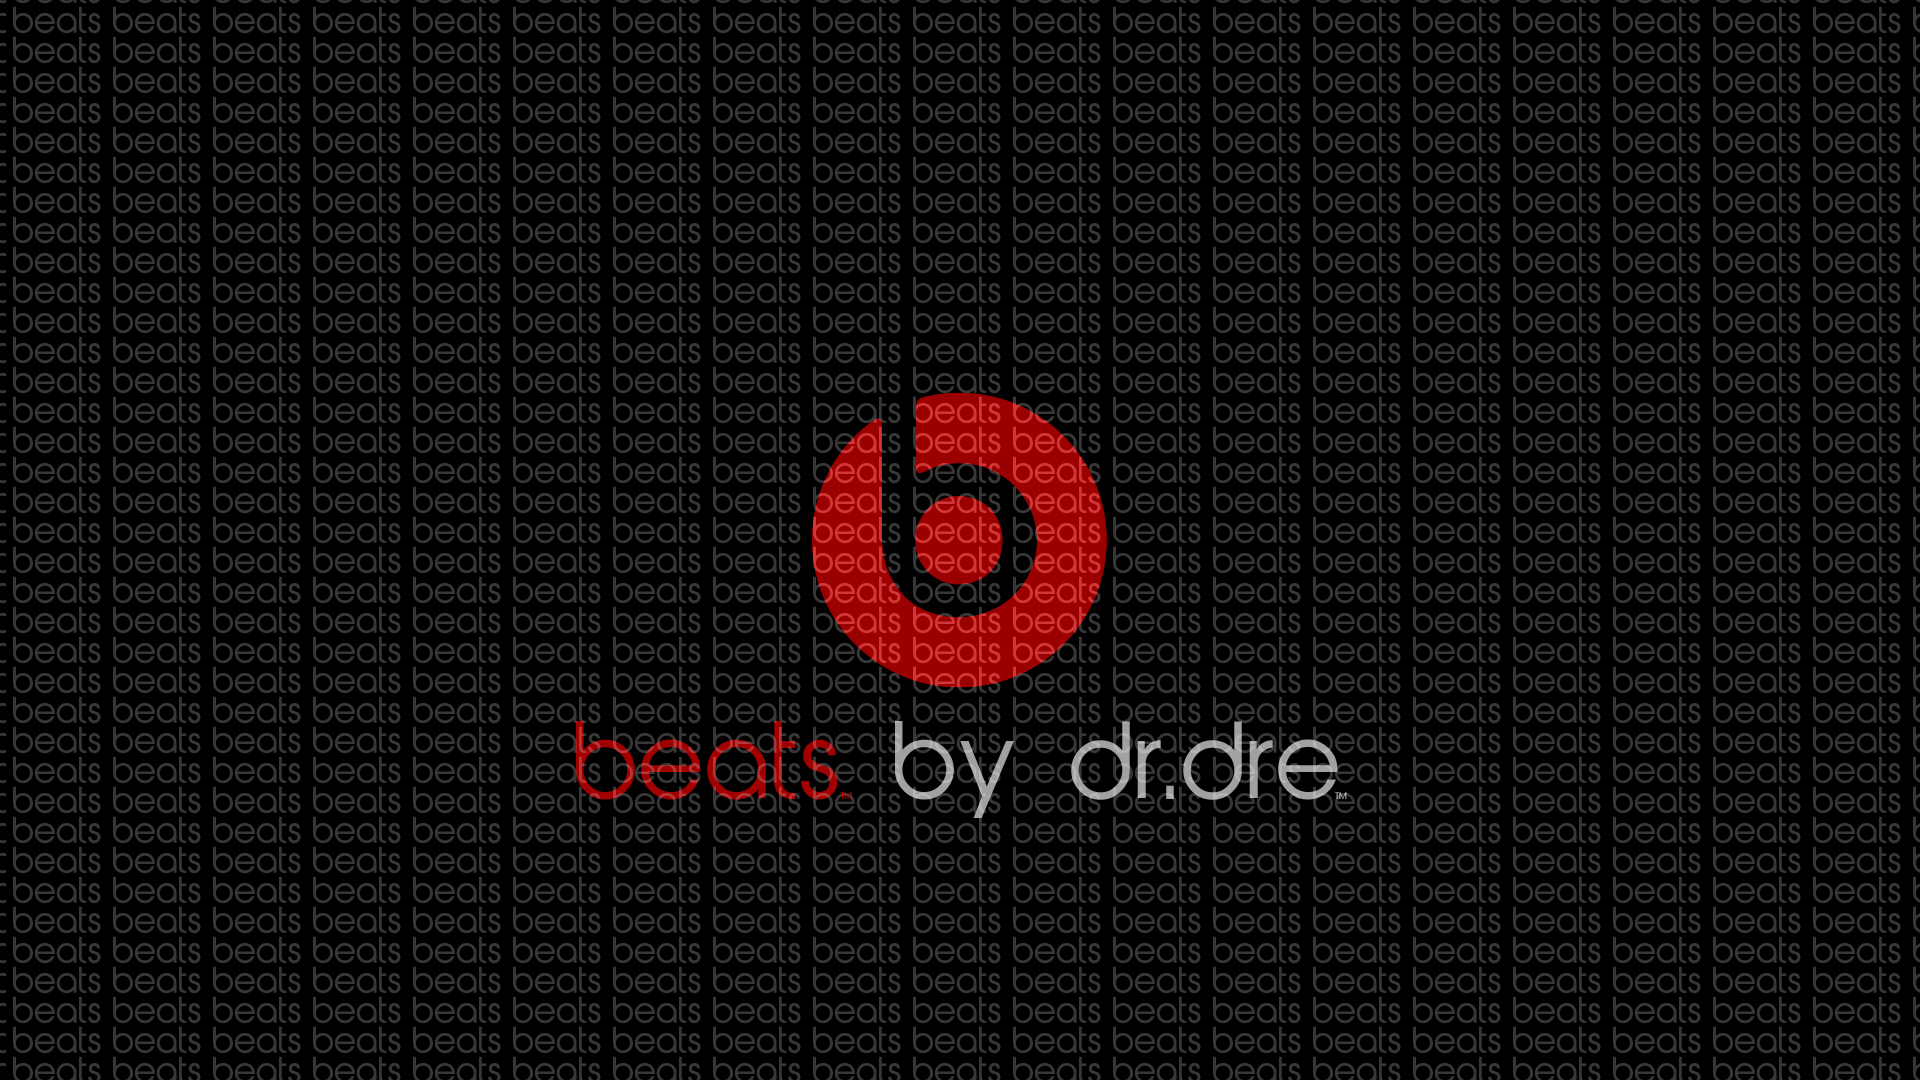 Beats by Dre Logo Wallpaper